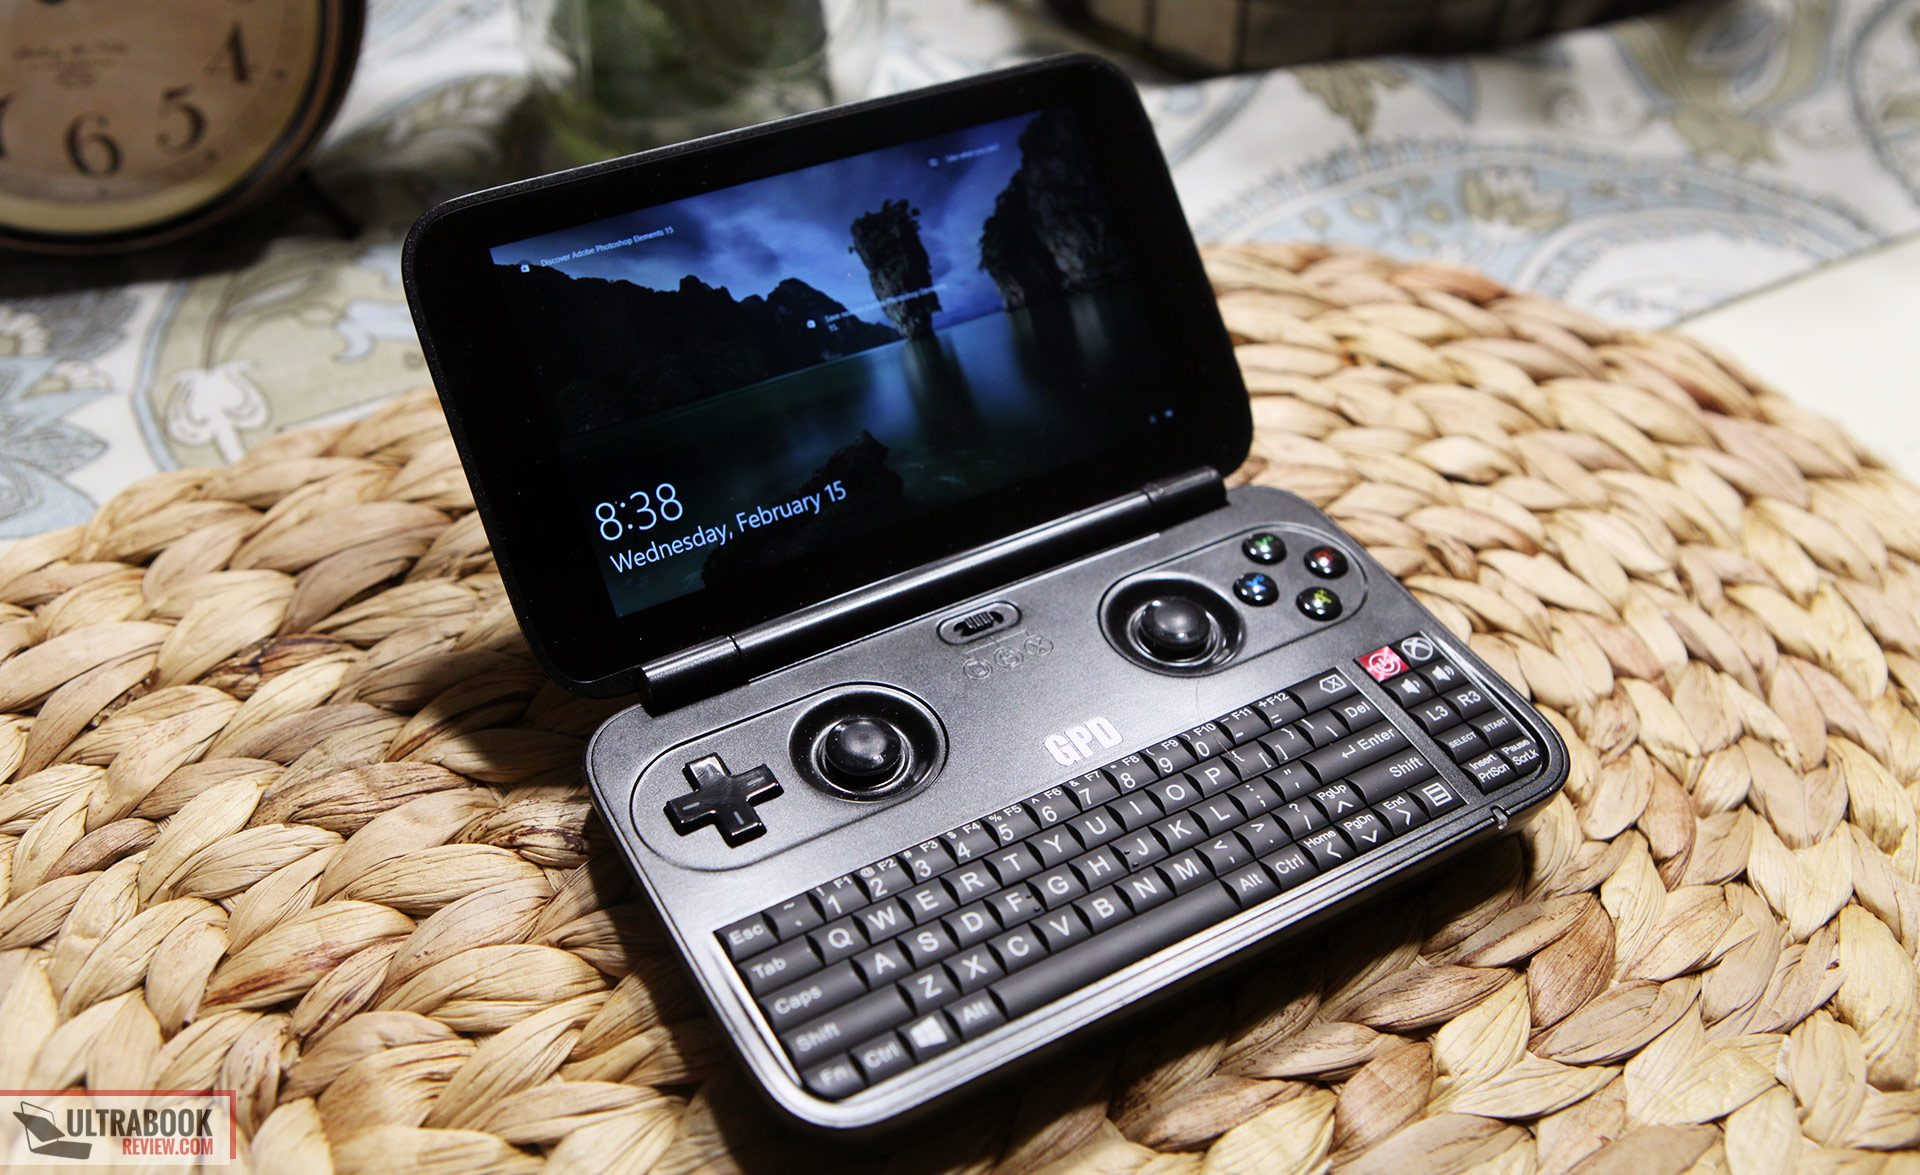 The GPD Win is a mini-laptop with a 5.5-inch screen and a multitude of input options